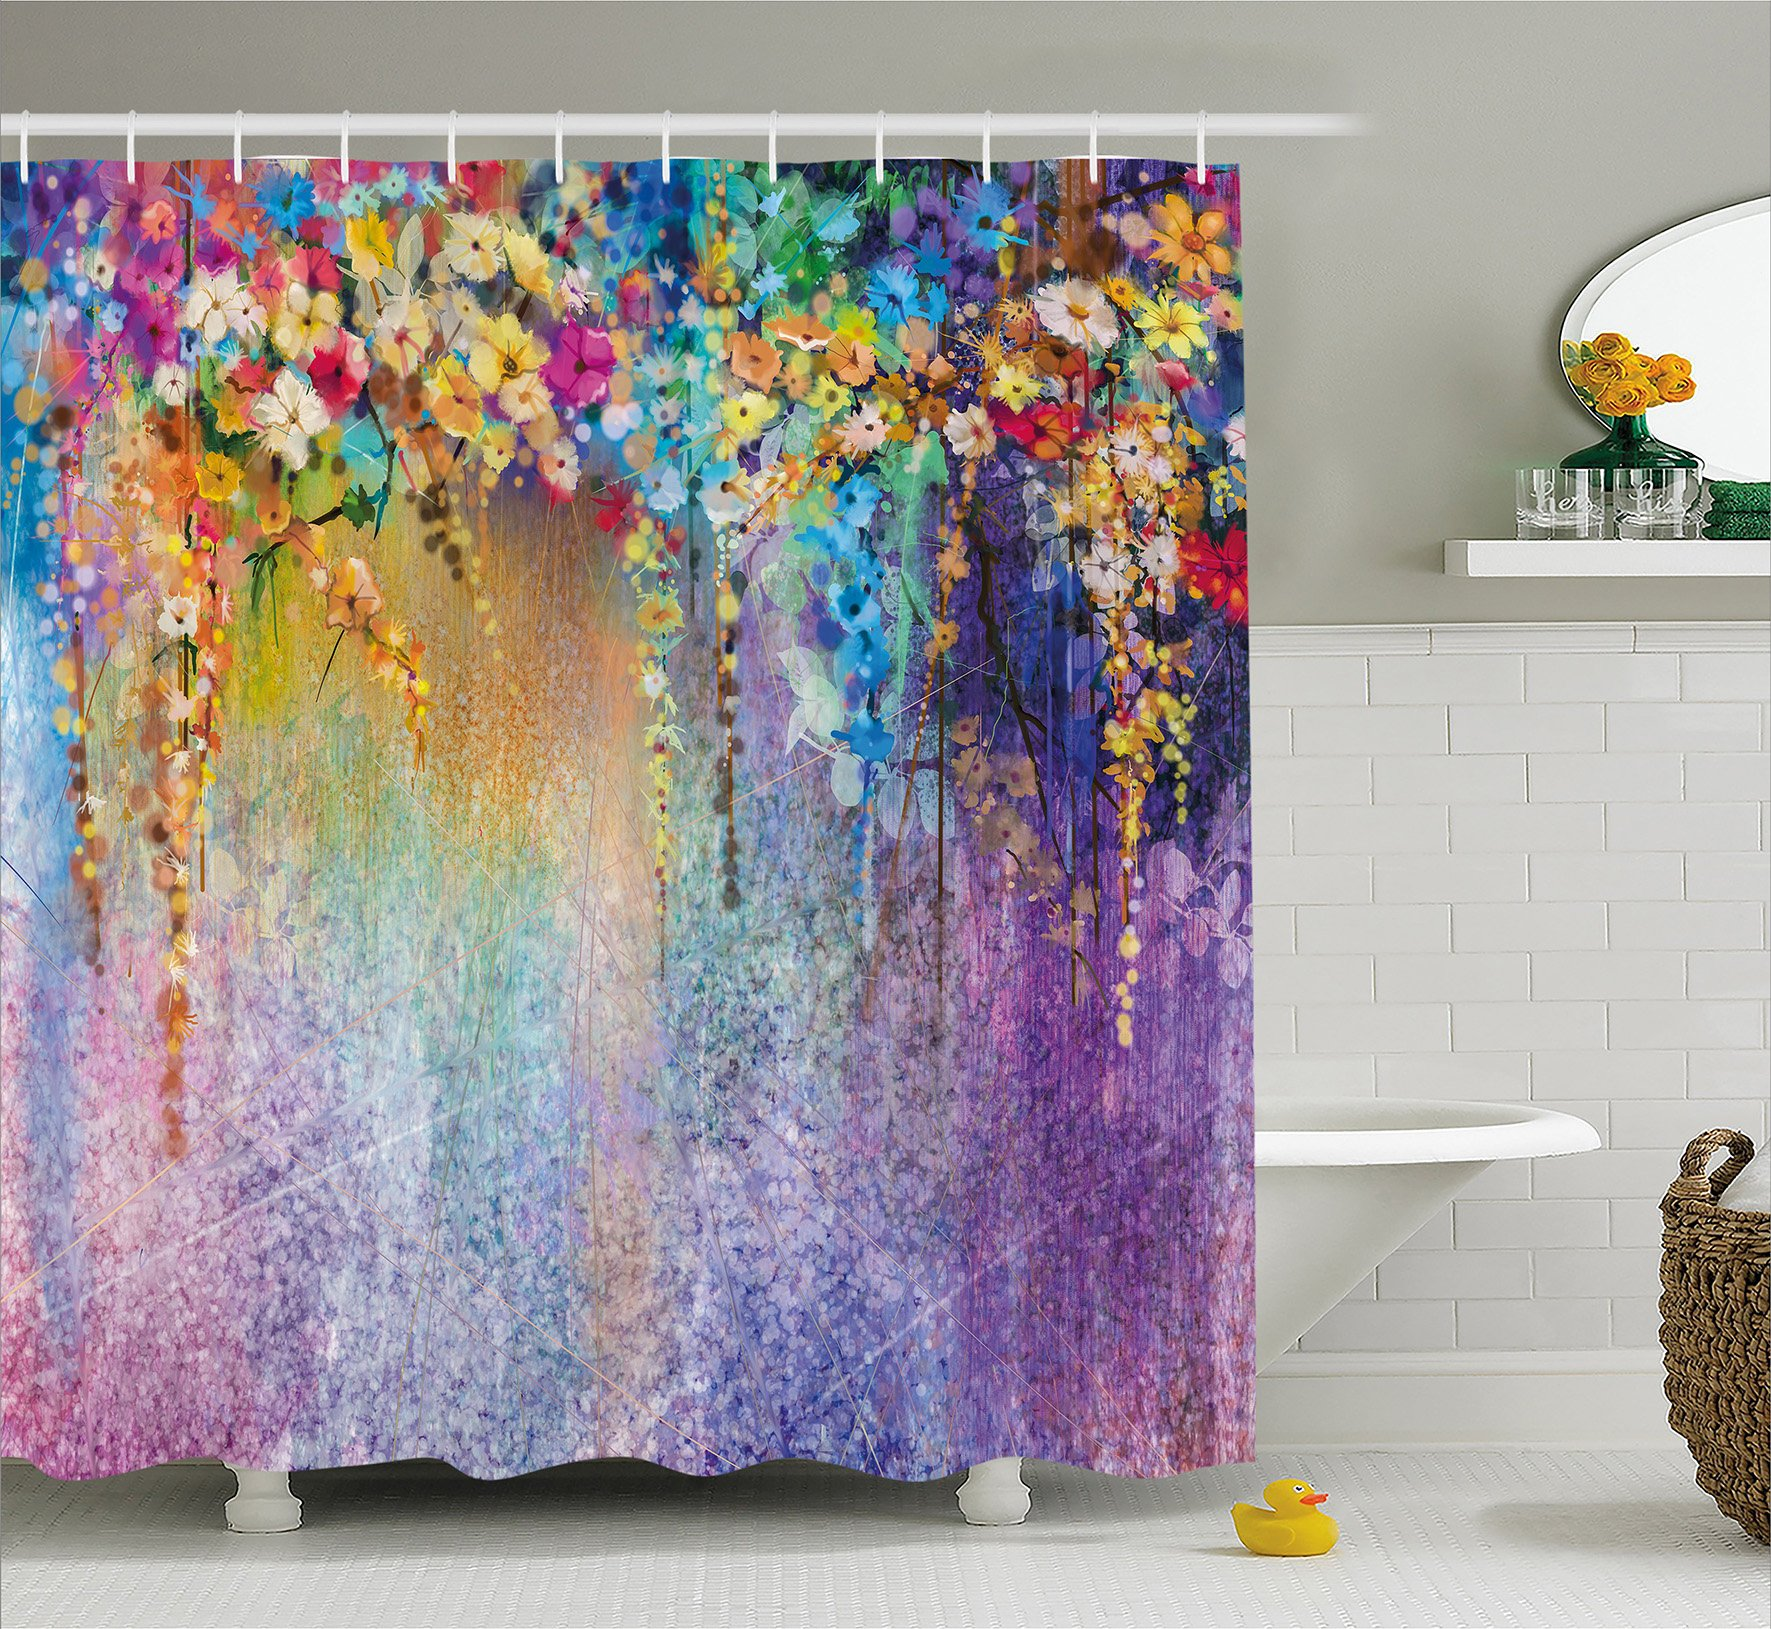 Ambesonne Watercolor Flower Home Decor Shower Curtain, Abstract Herbs Weeds Blossoms Ivy Back with Florets Shrubs Design, Fabric Bathroom Decor Set with Hooks, 84 Inches Extra Long, Blue Purple